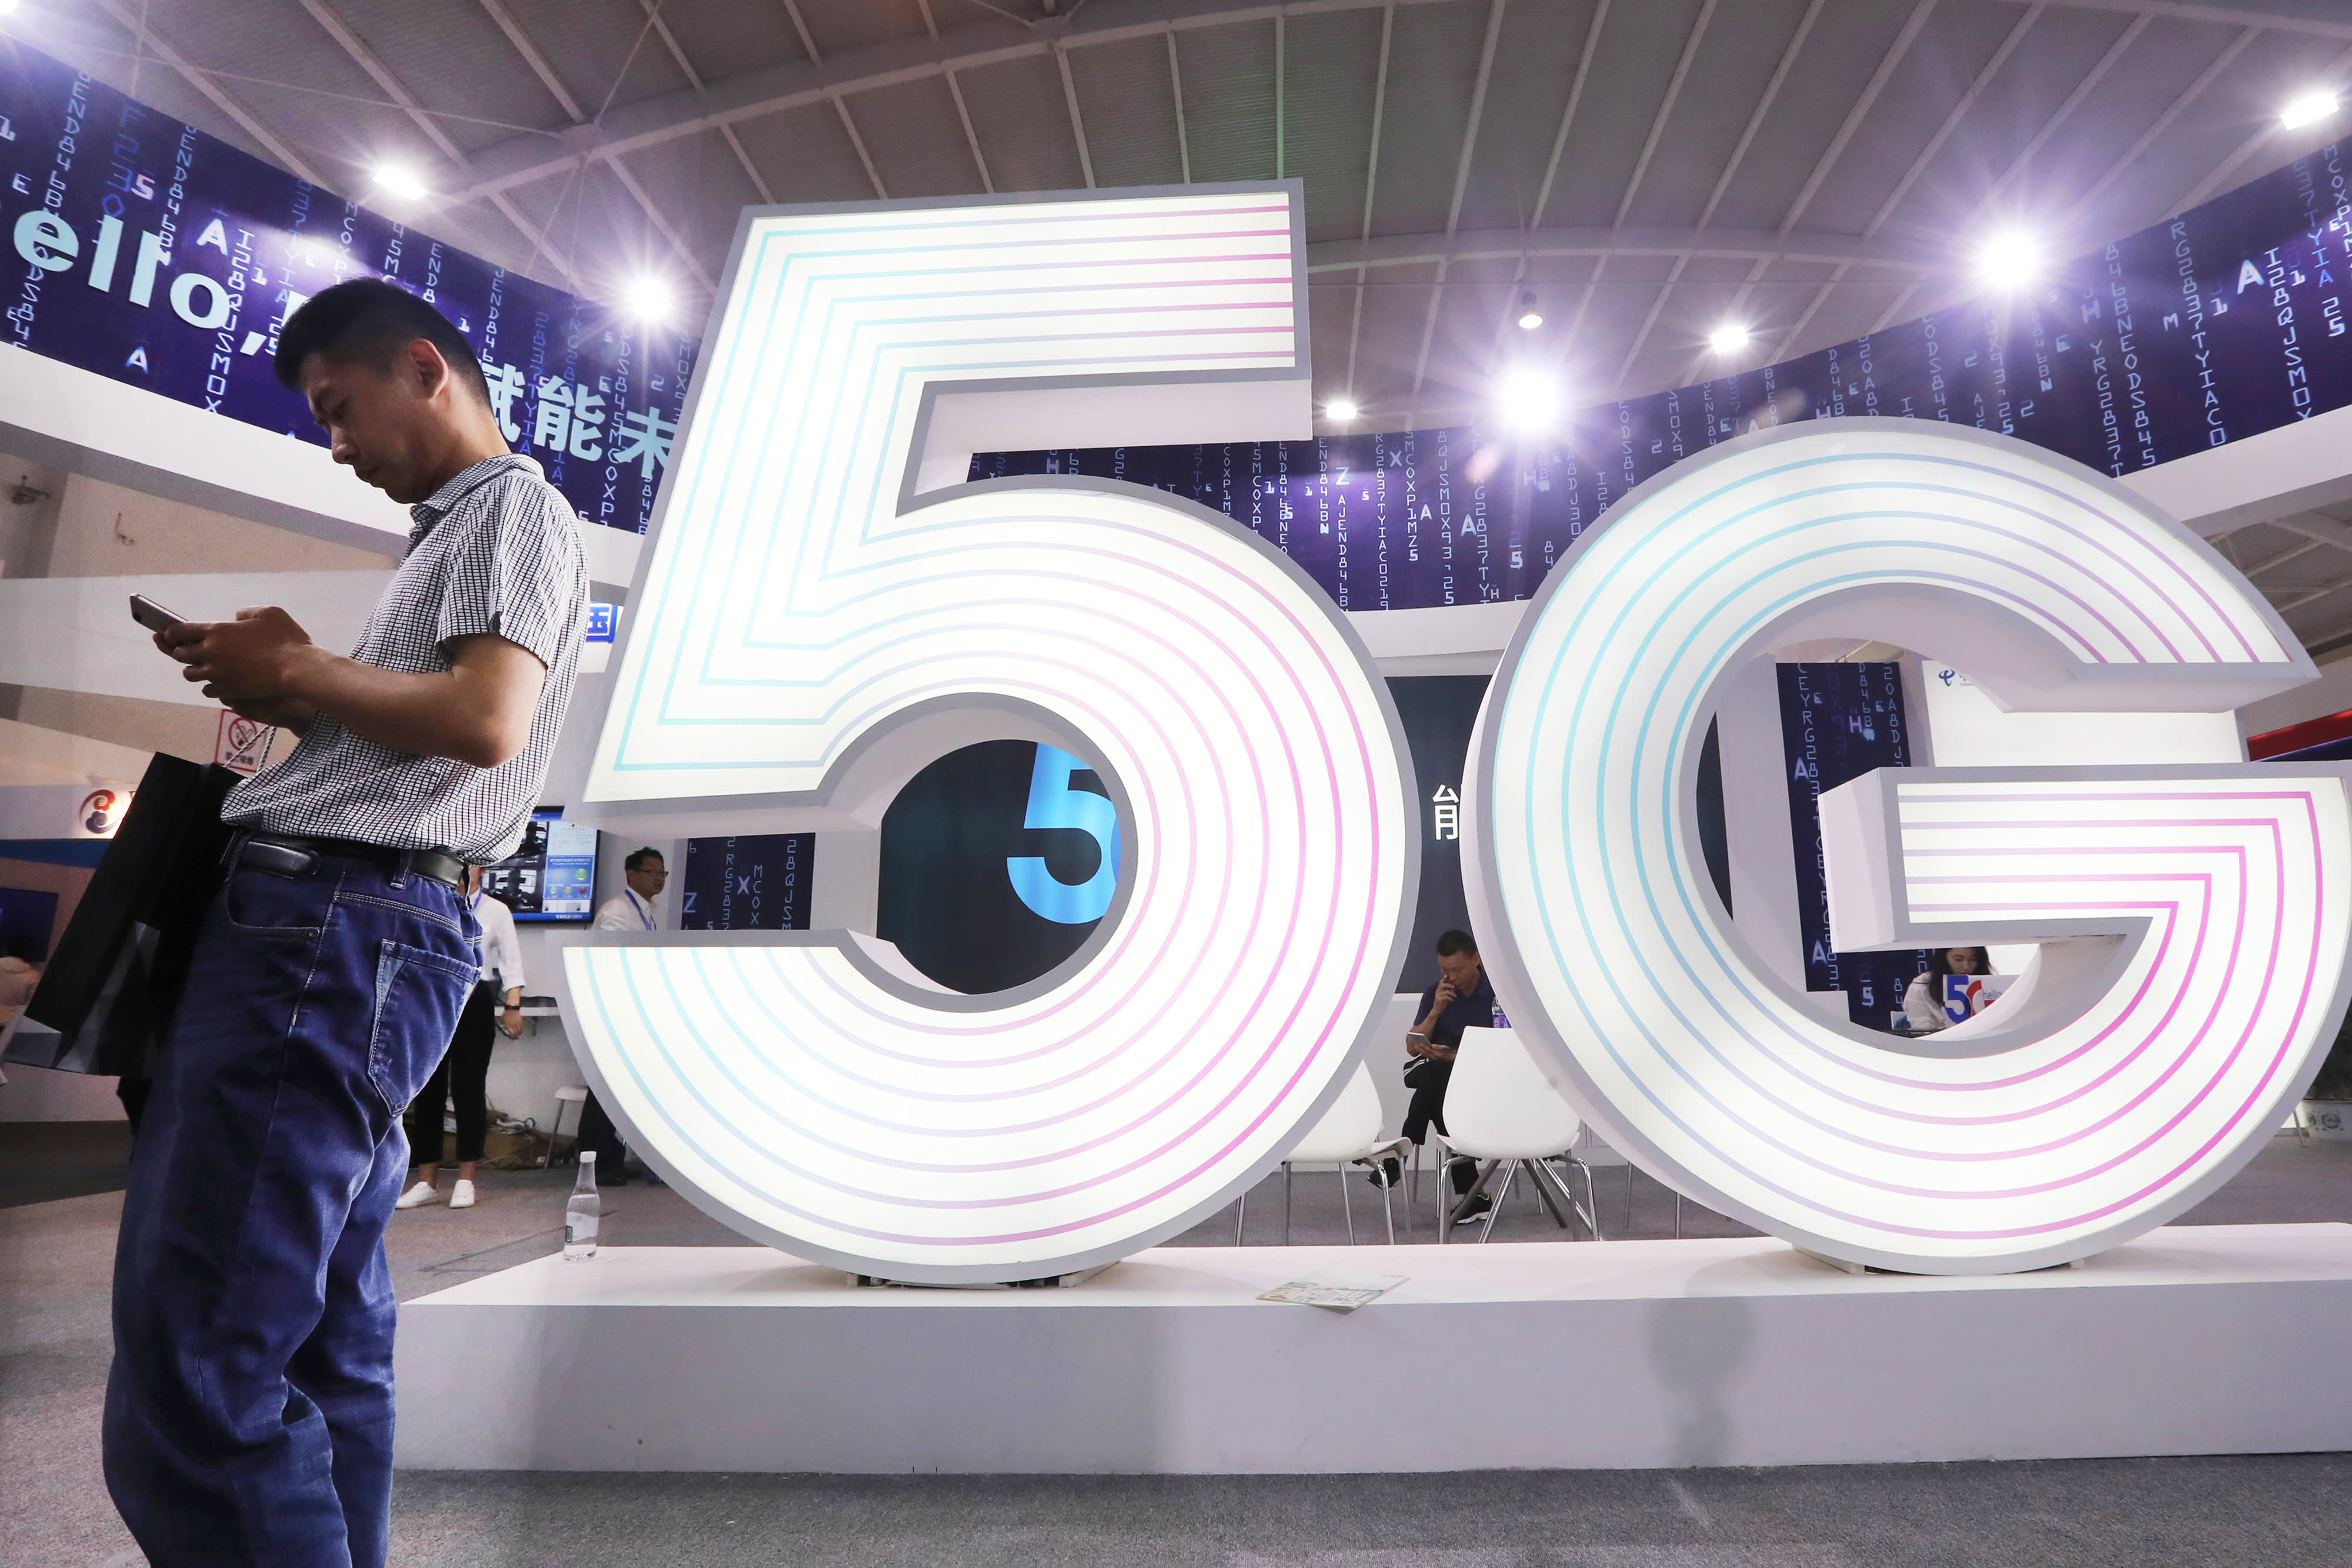 The EU says security is not the only concern when it comes to 5G